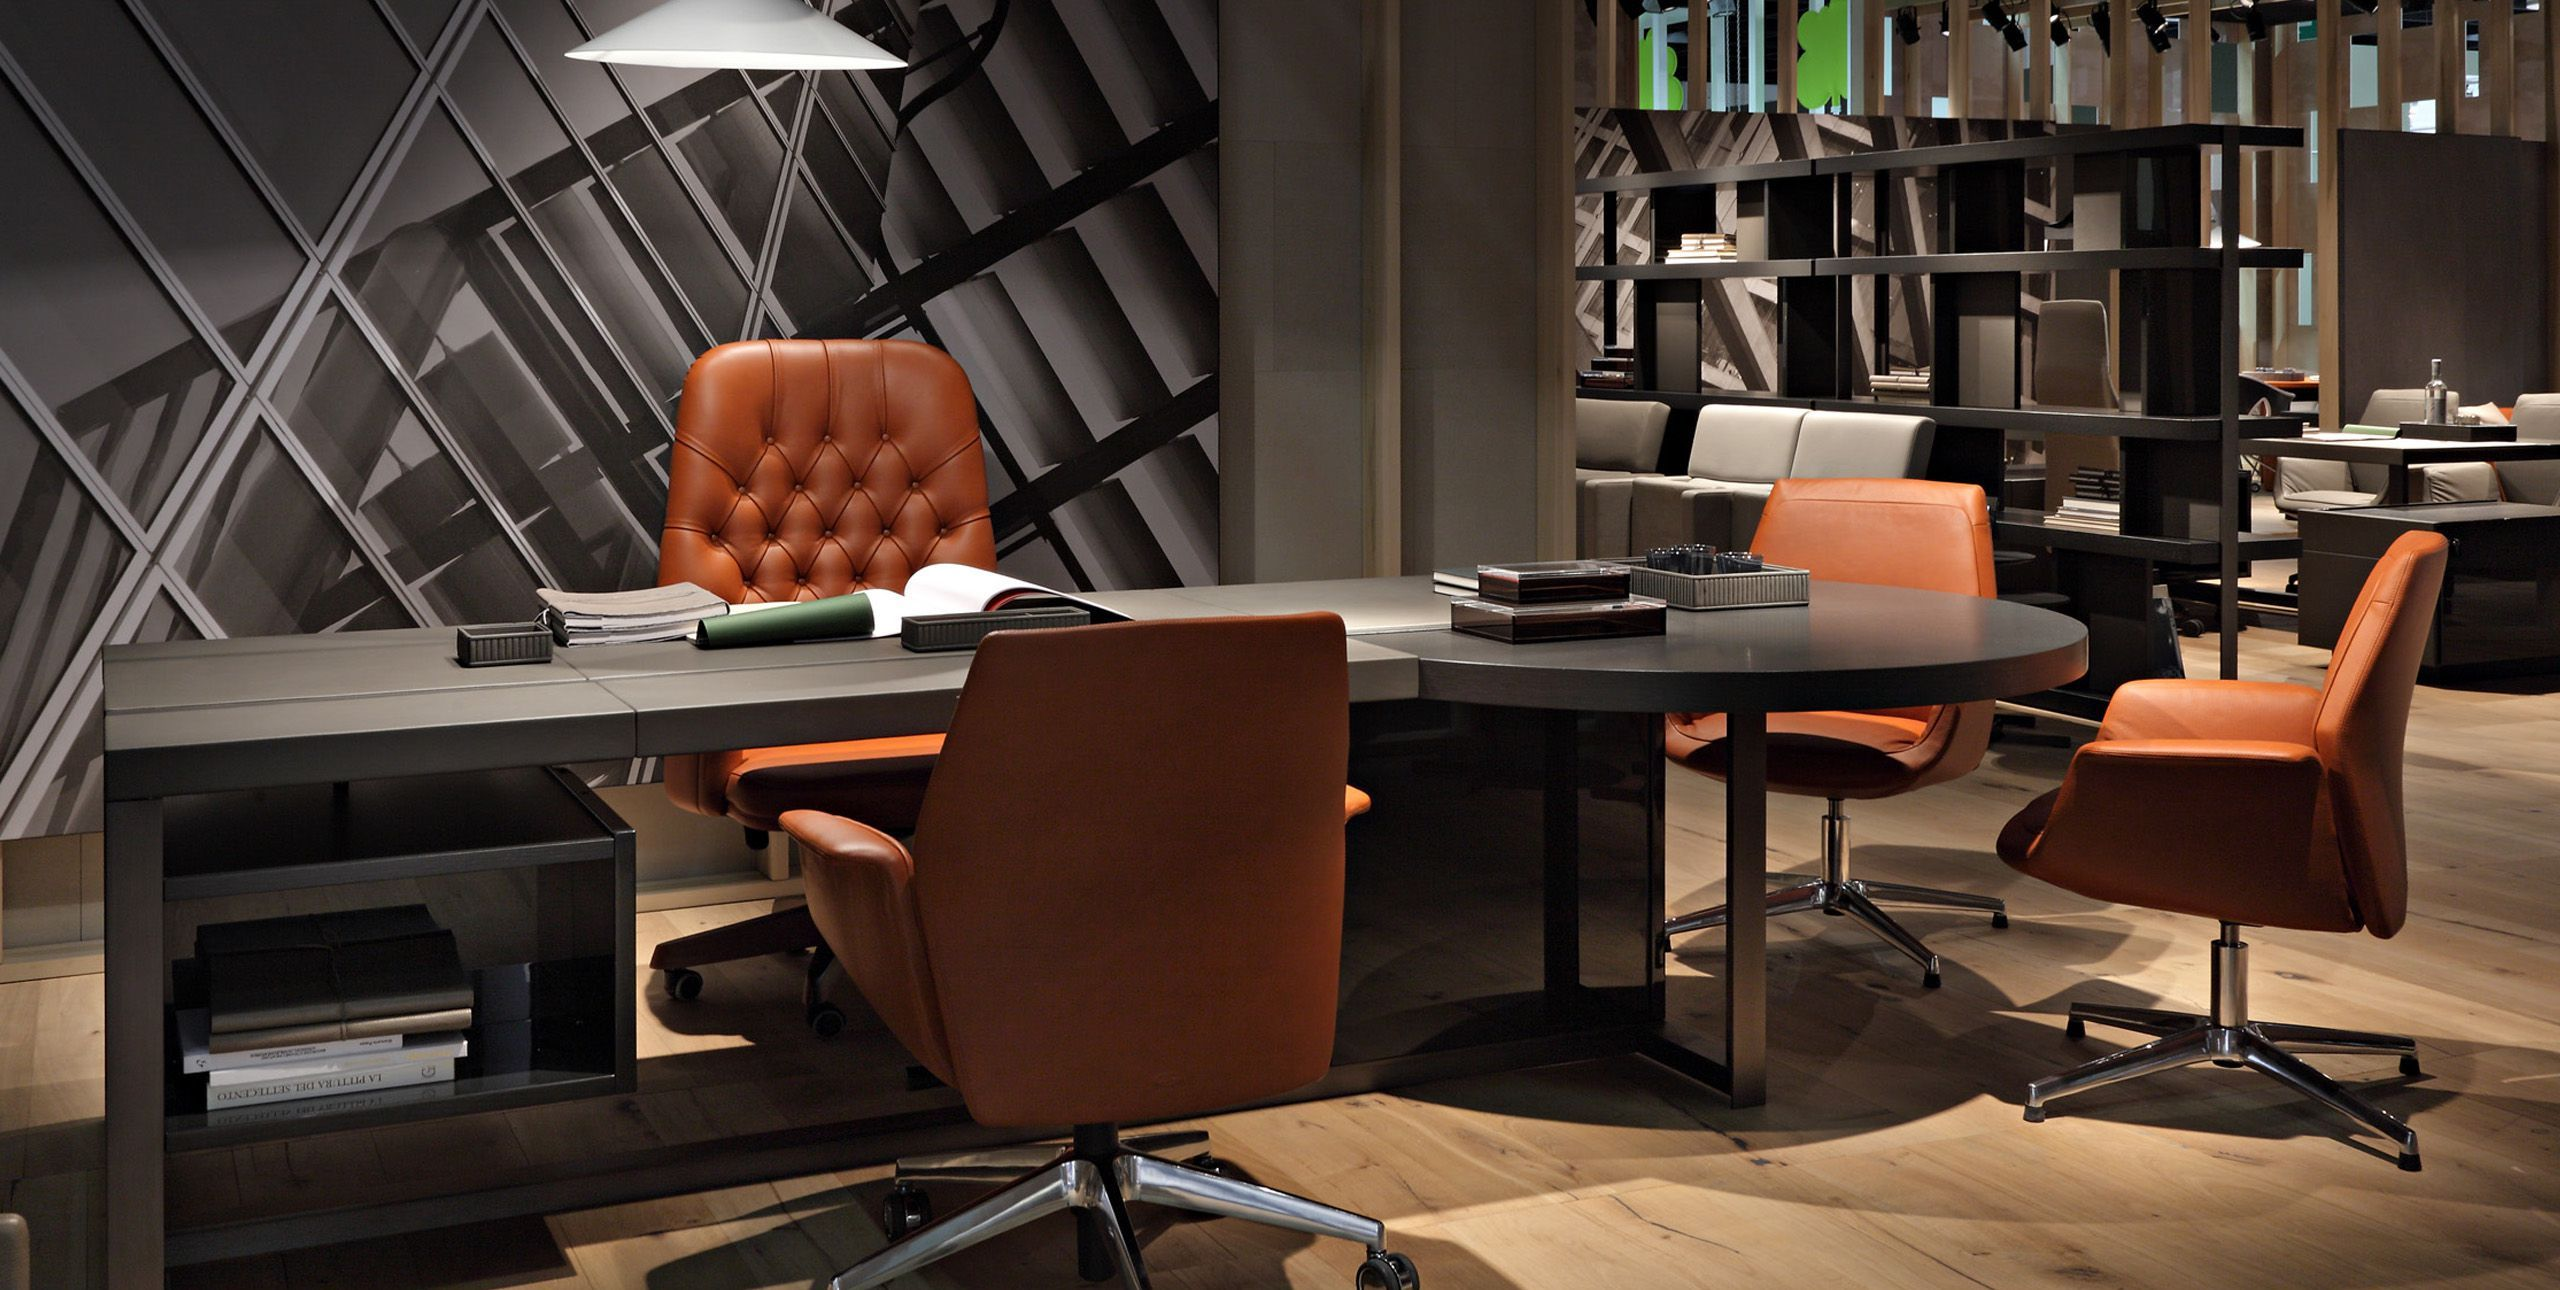 Poltrona Frau Jobs Office Desk, With Oxford And Downtown Chairs.